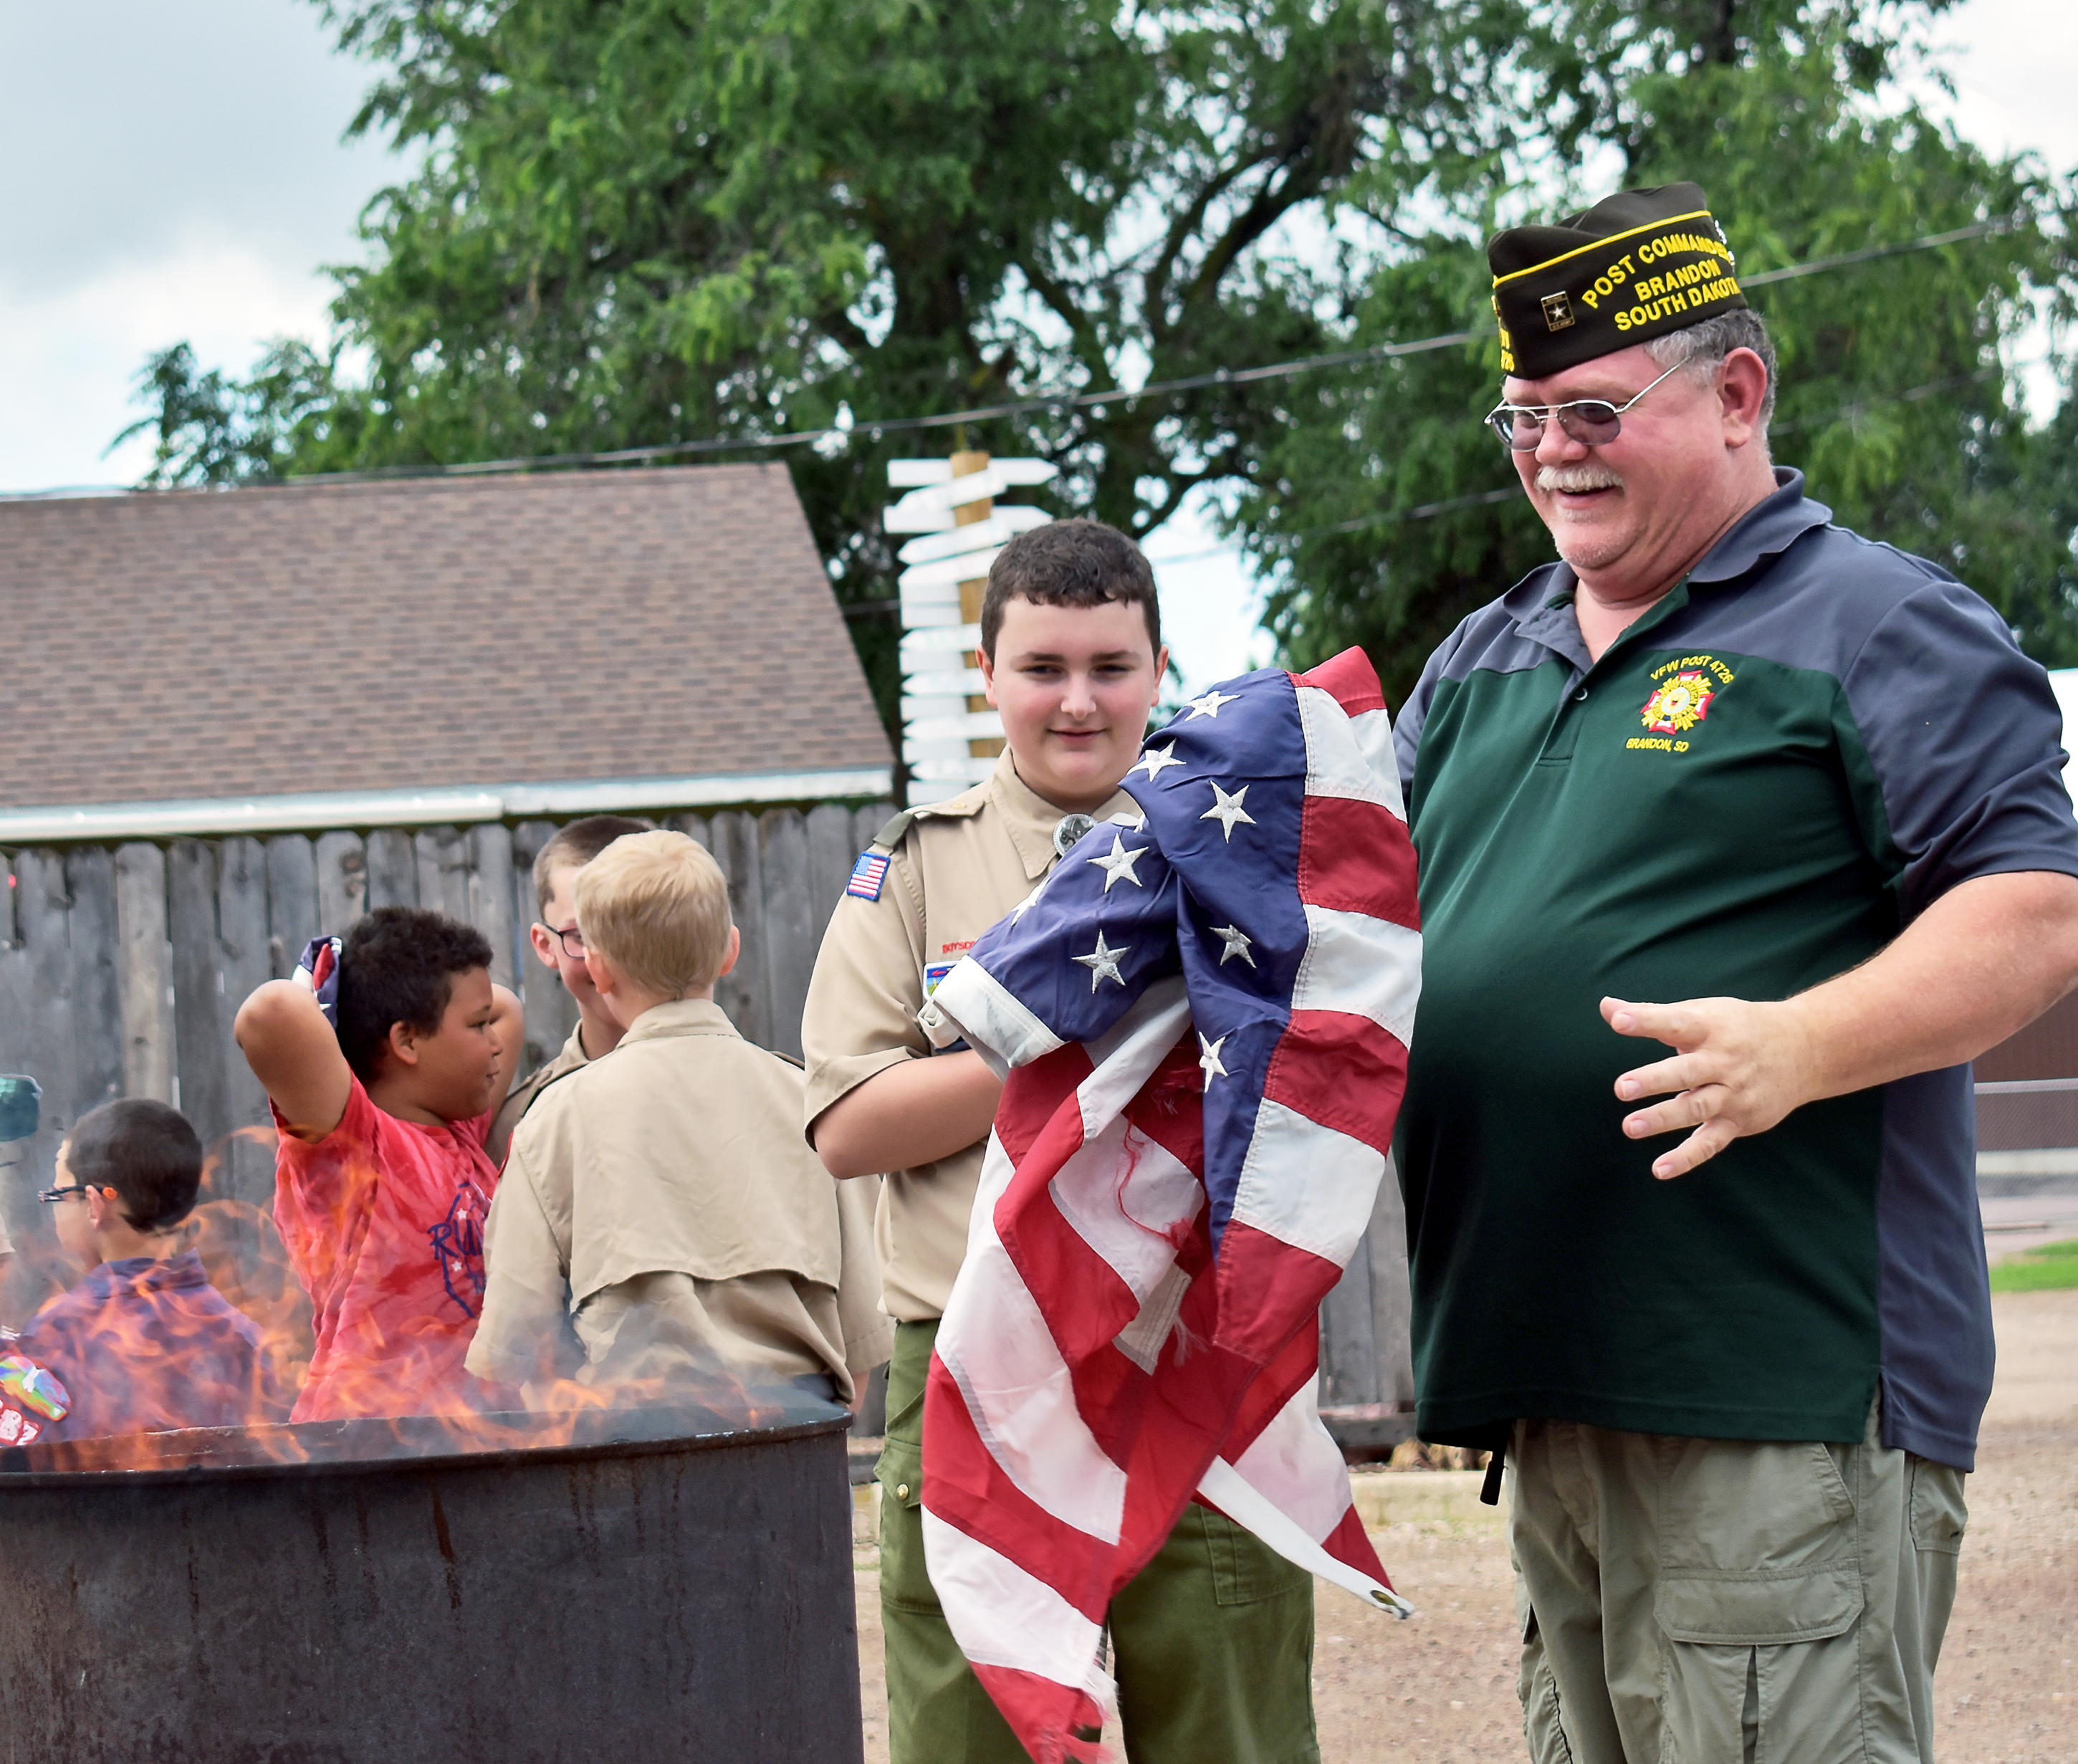 Brady Simons <i>(above</i>) and Isak Gunnick <i>(below) </i>hand flags to Troy Zimmerman at the VFW's annual retirement ceremony June 9.*/